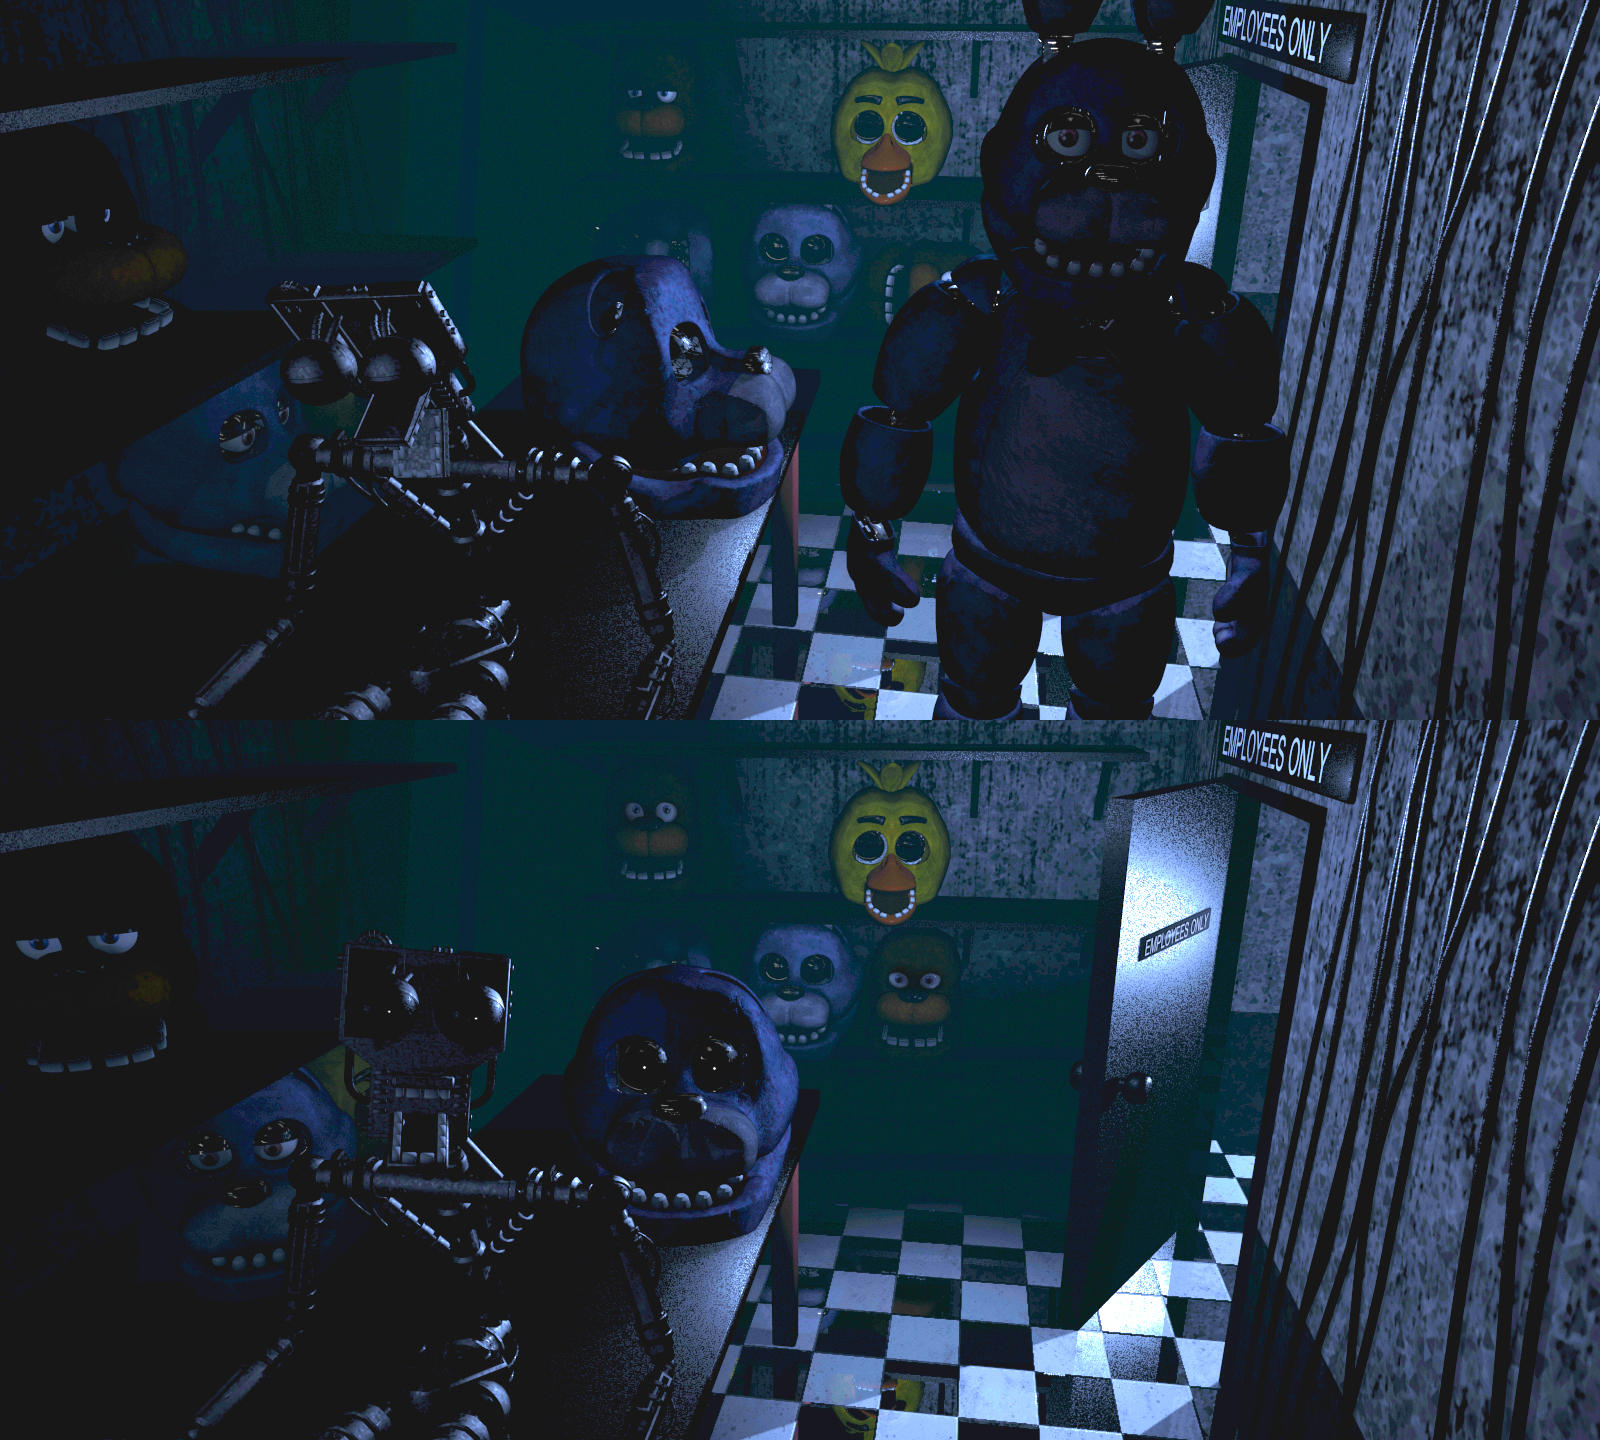 Endoskeleton Five Nights At Freddy S Know Your Meme